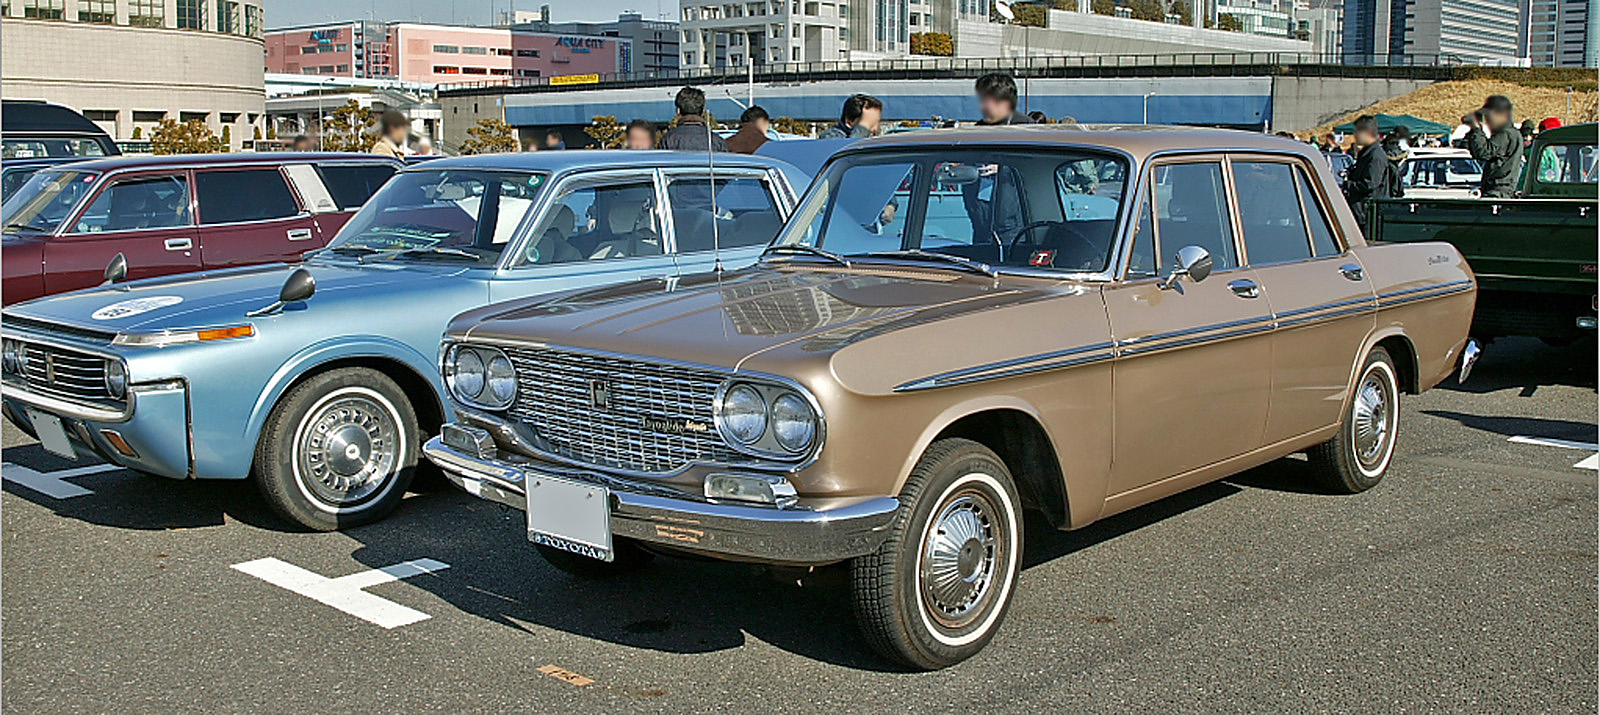 ������ �������������������������������� ......����� ���� Toyopet_Crown_RS41_001.jpg